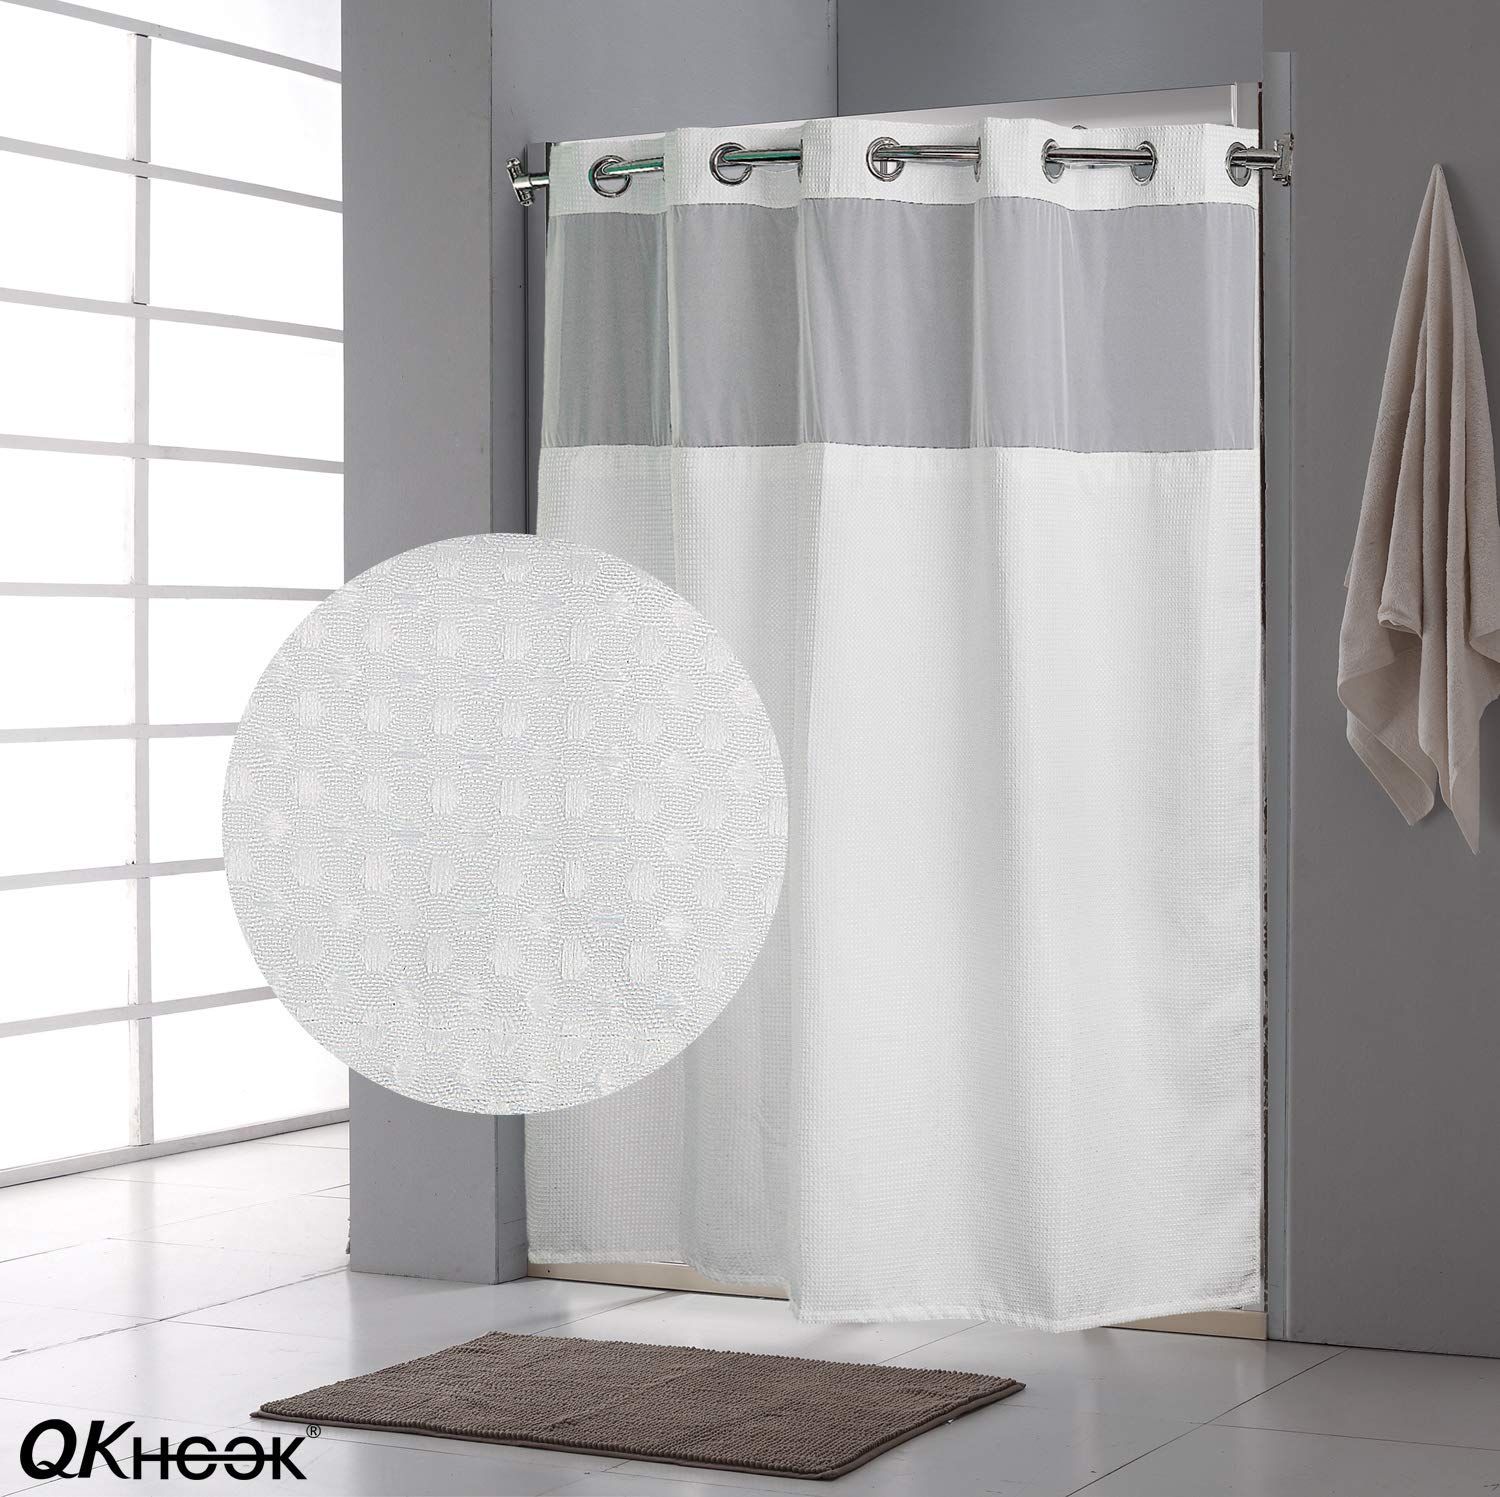 qkhook hookless shower curtain with snap in liner 1 pack 71x77 inches waffle pattern fabric water repellent walmart com